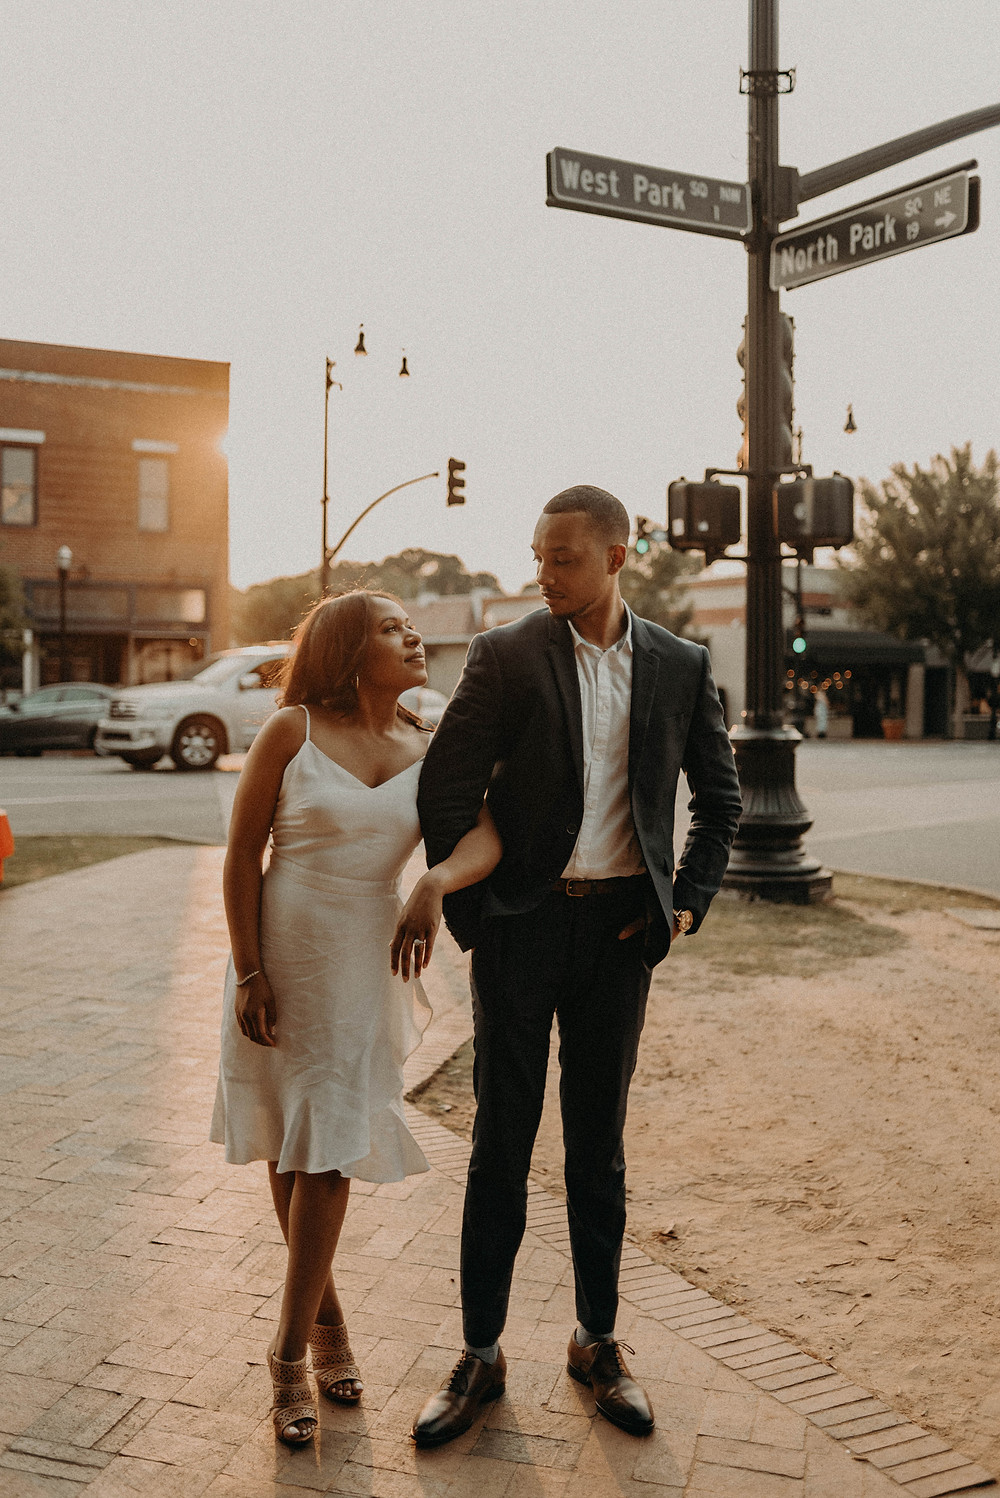 Engagement session in Marietta Square. Sunset